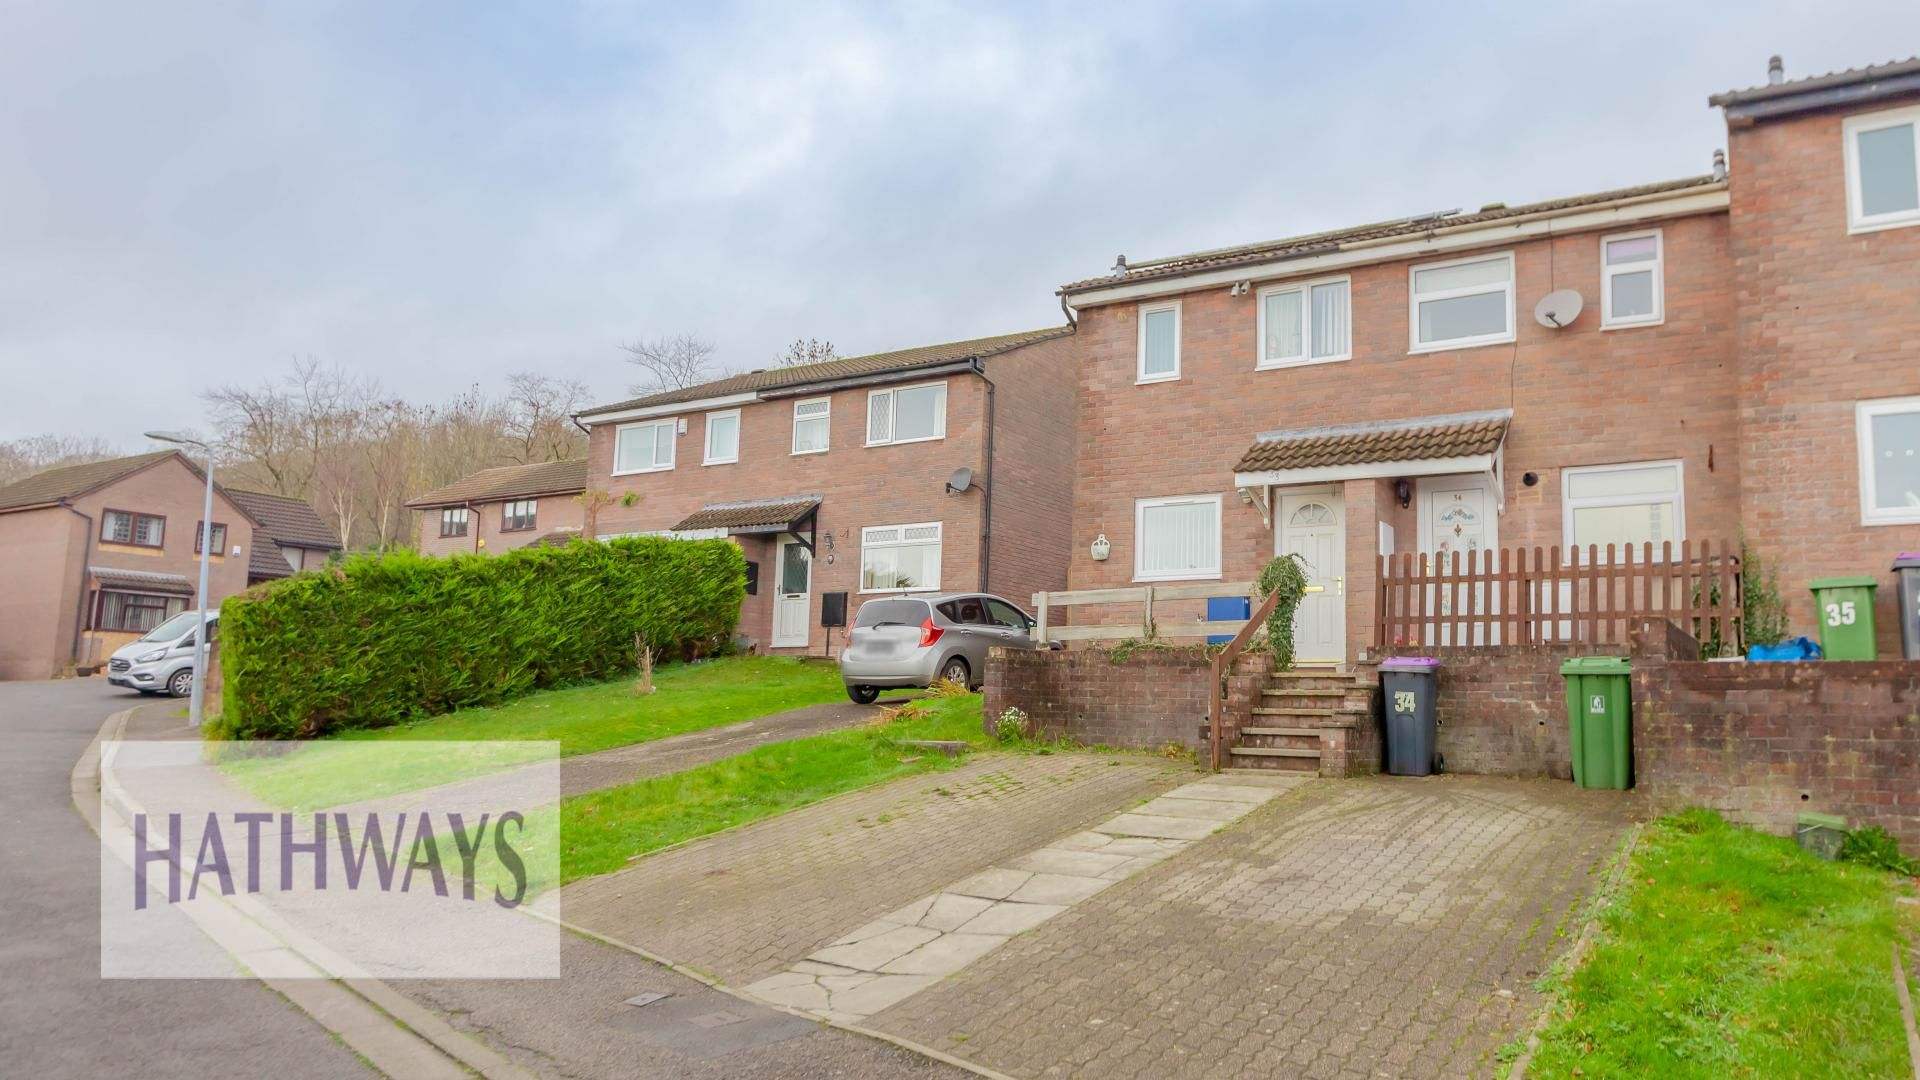 2 bed house for sale in Spring Grove, NP44